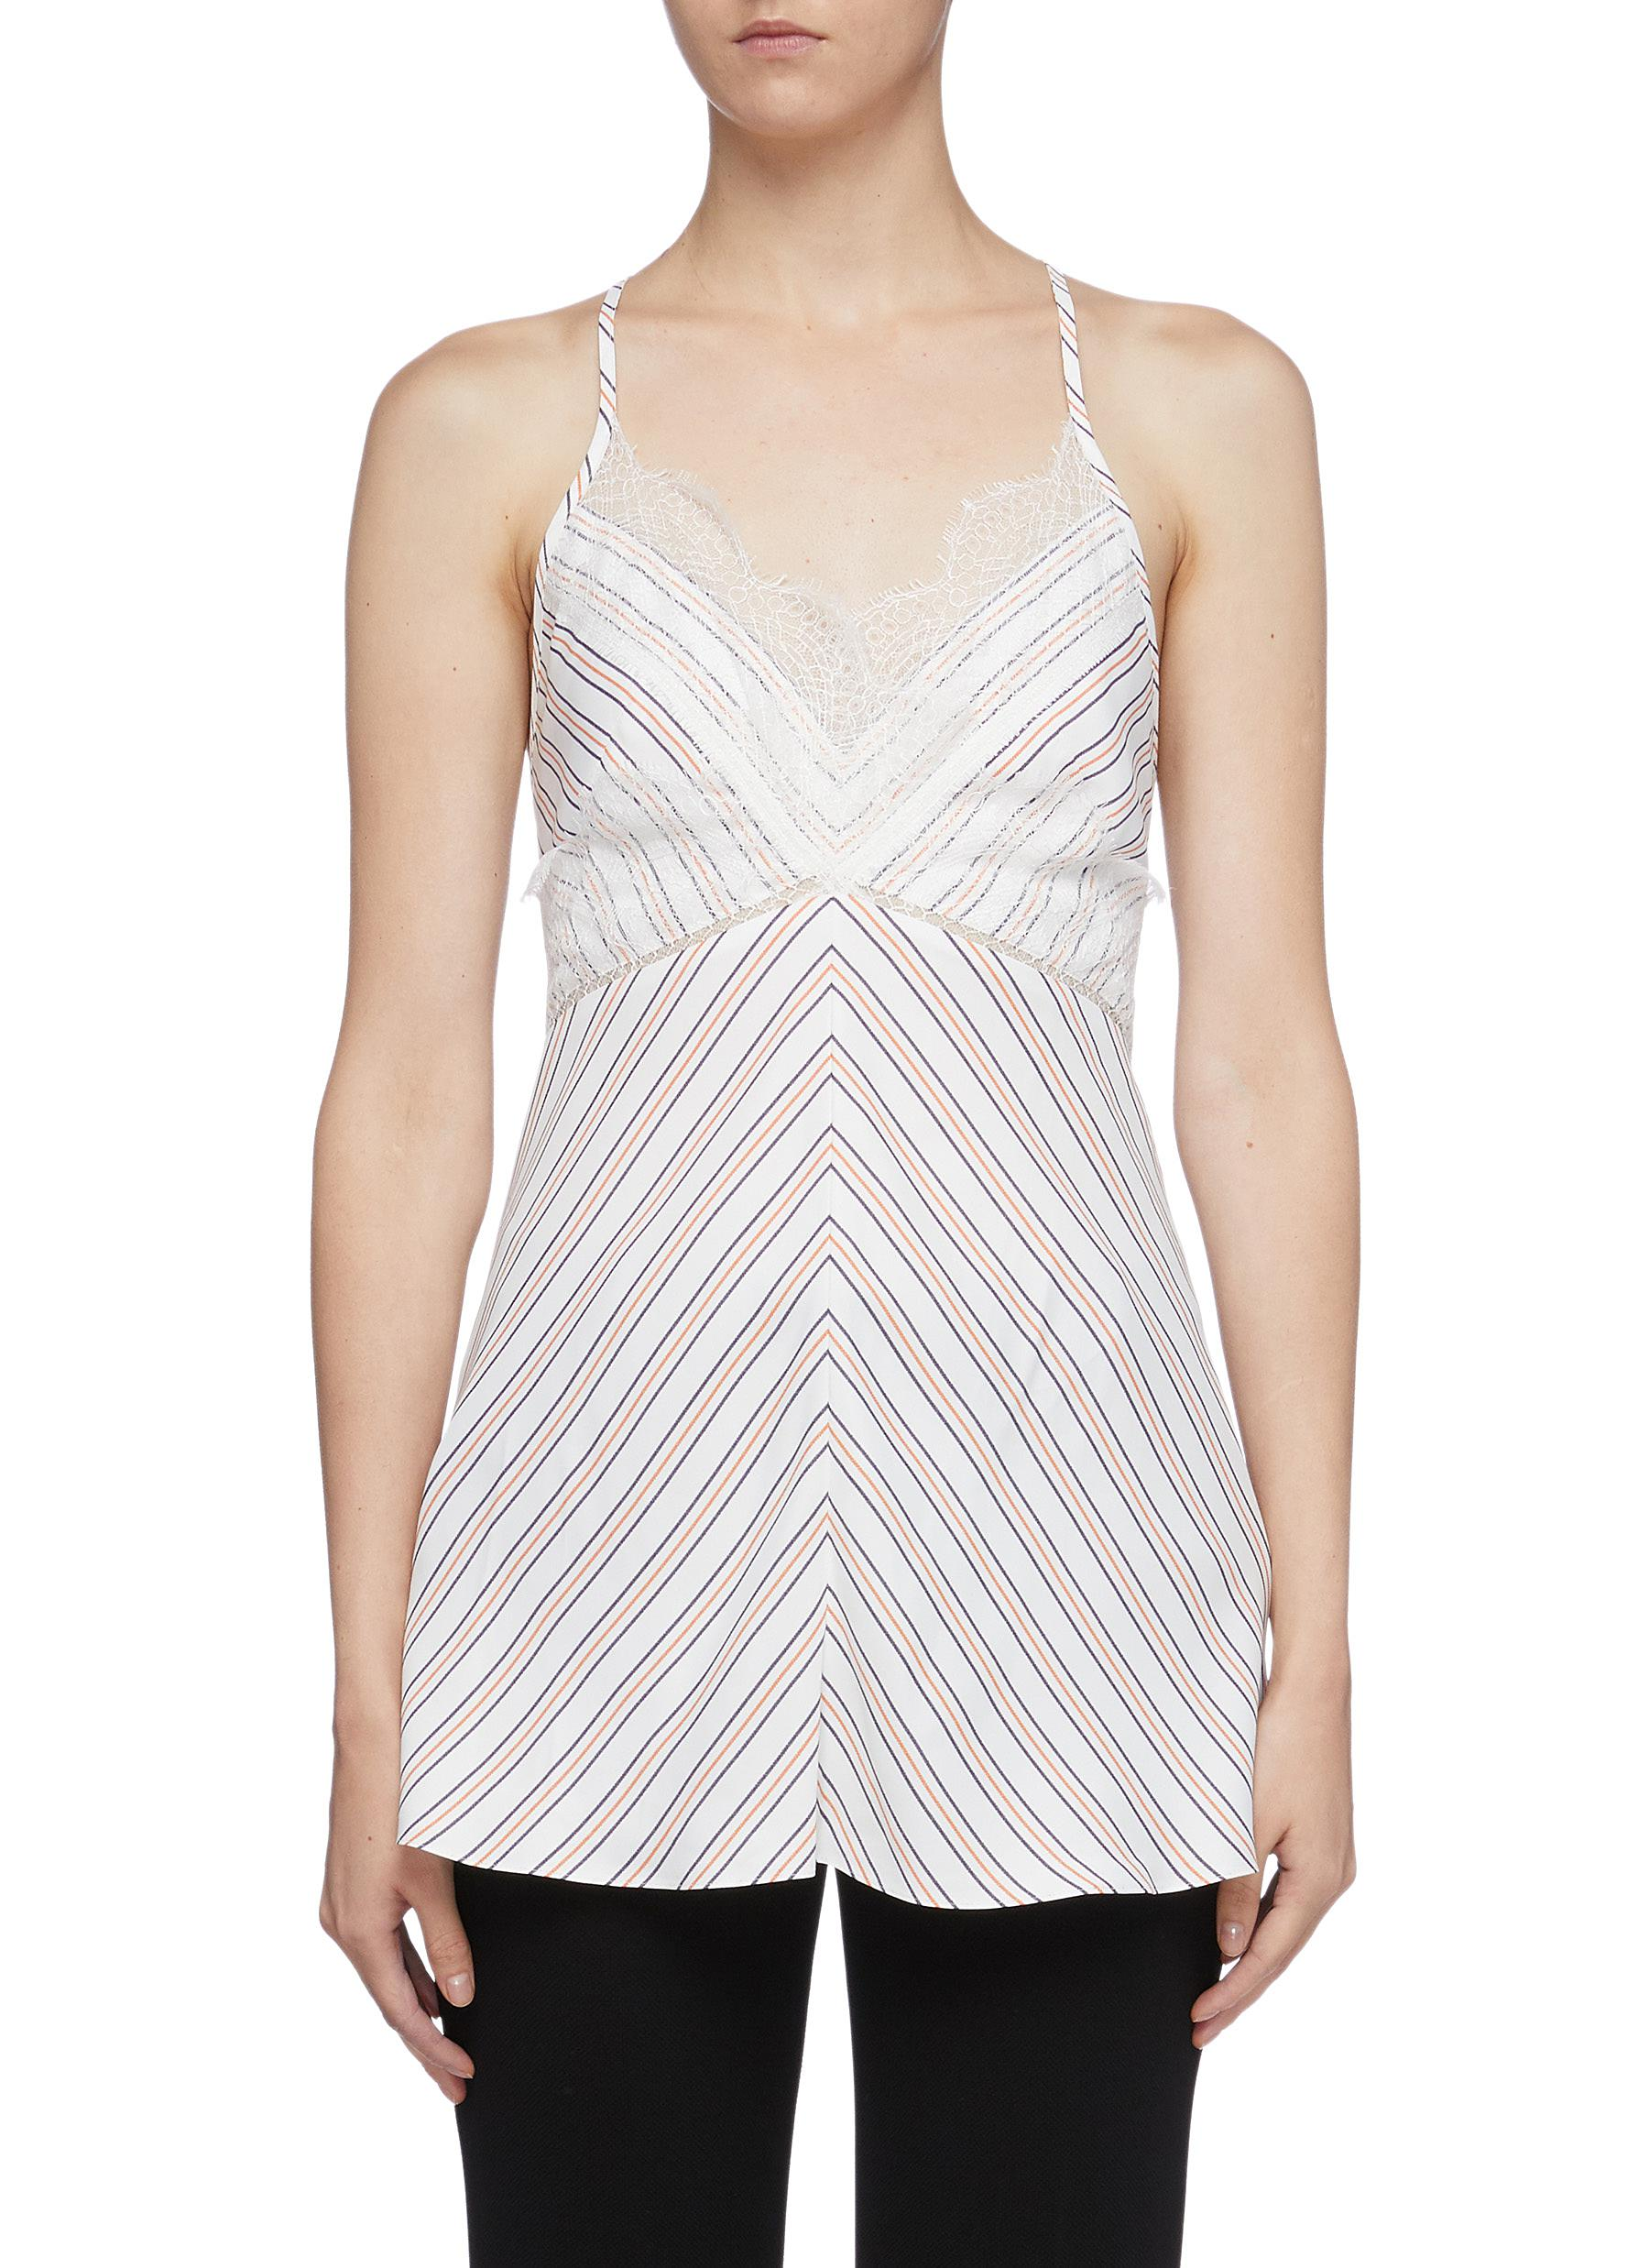 Chantilly lace trim cross back stripe camisole top by Victoria Beckham